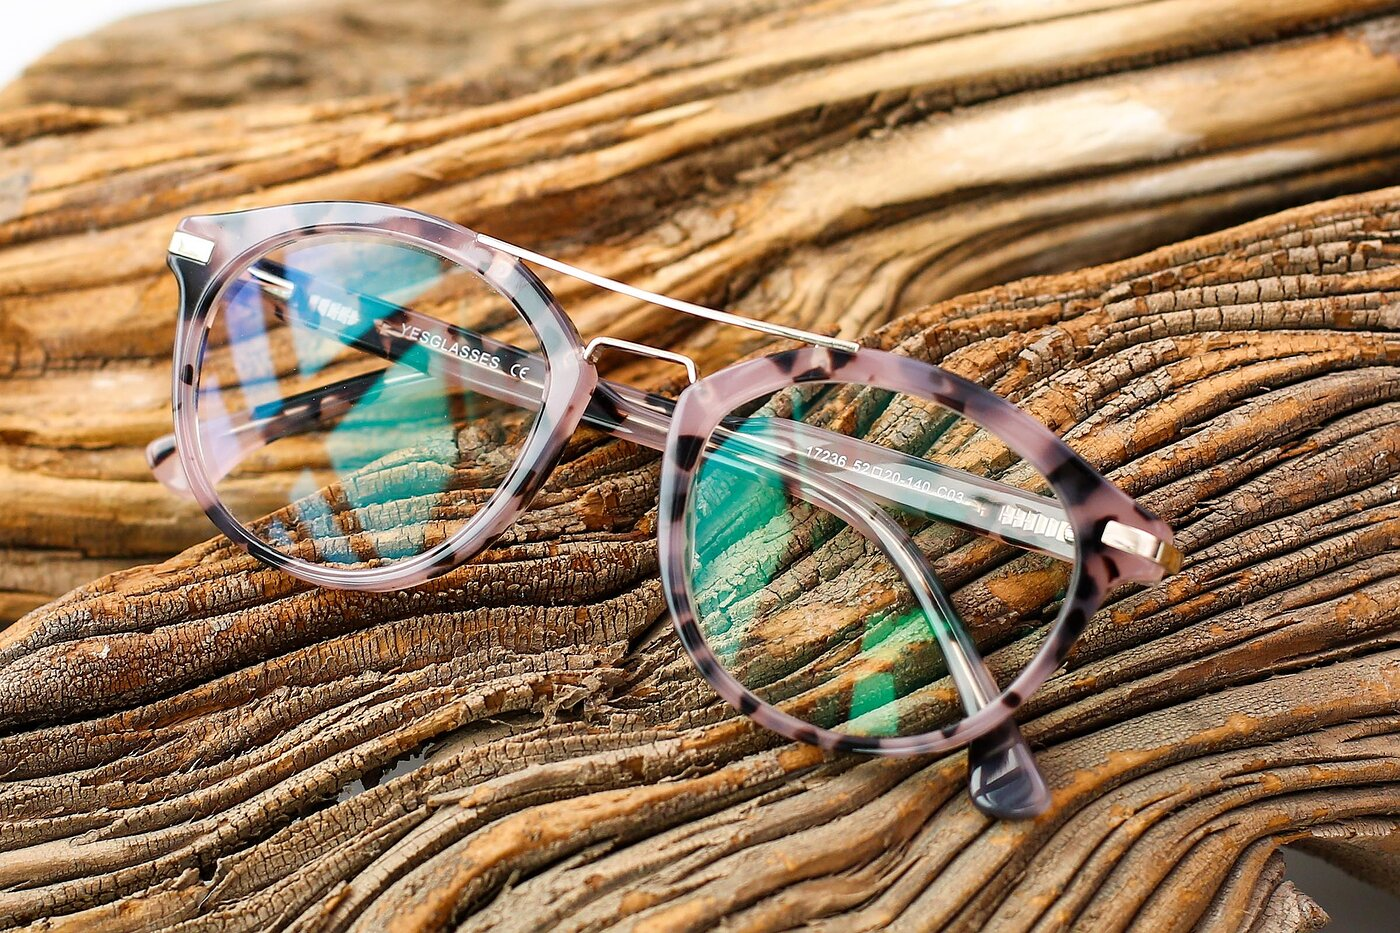 Havana Floral-Gold Retro-Vintage Double Bridge Acetate Eyeglasses